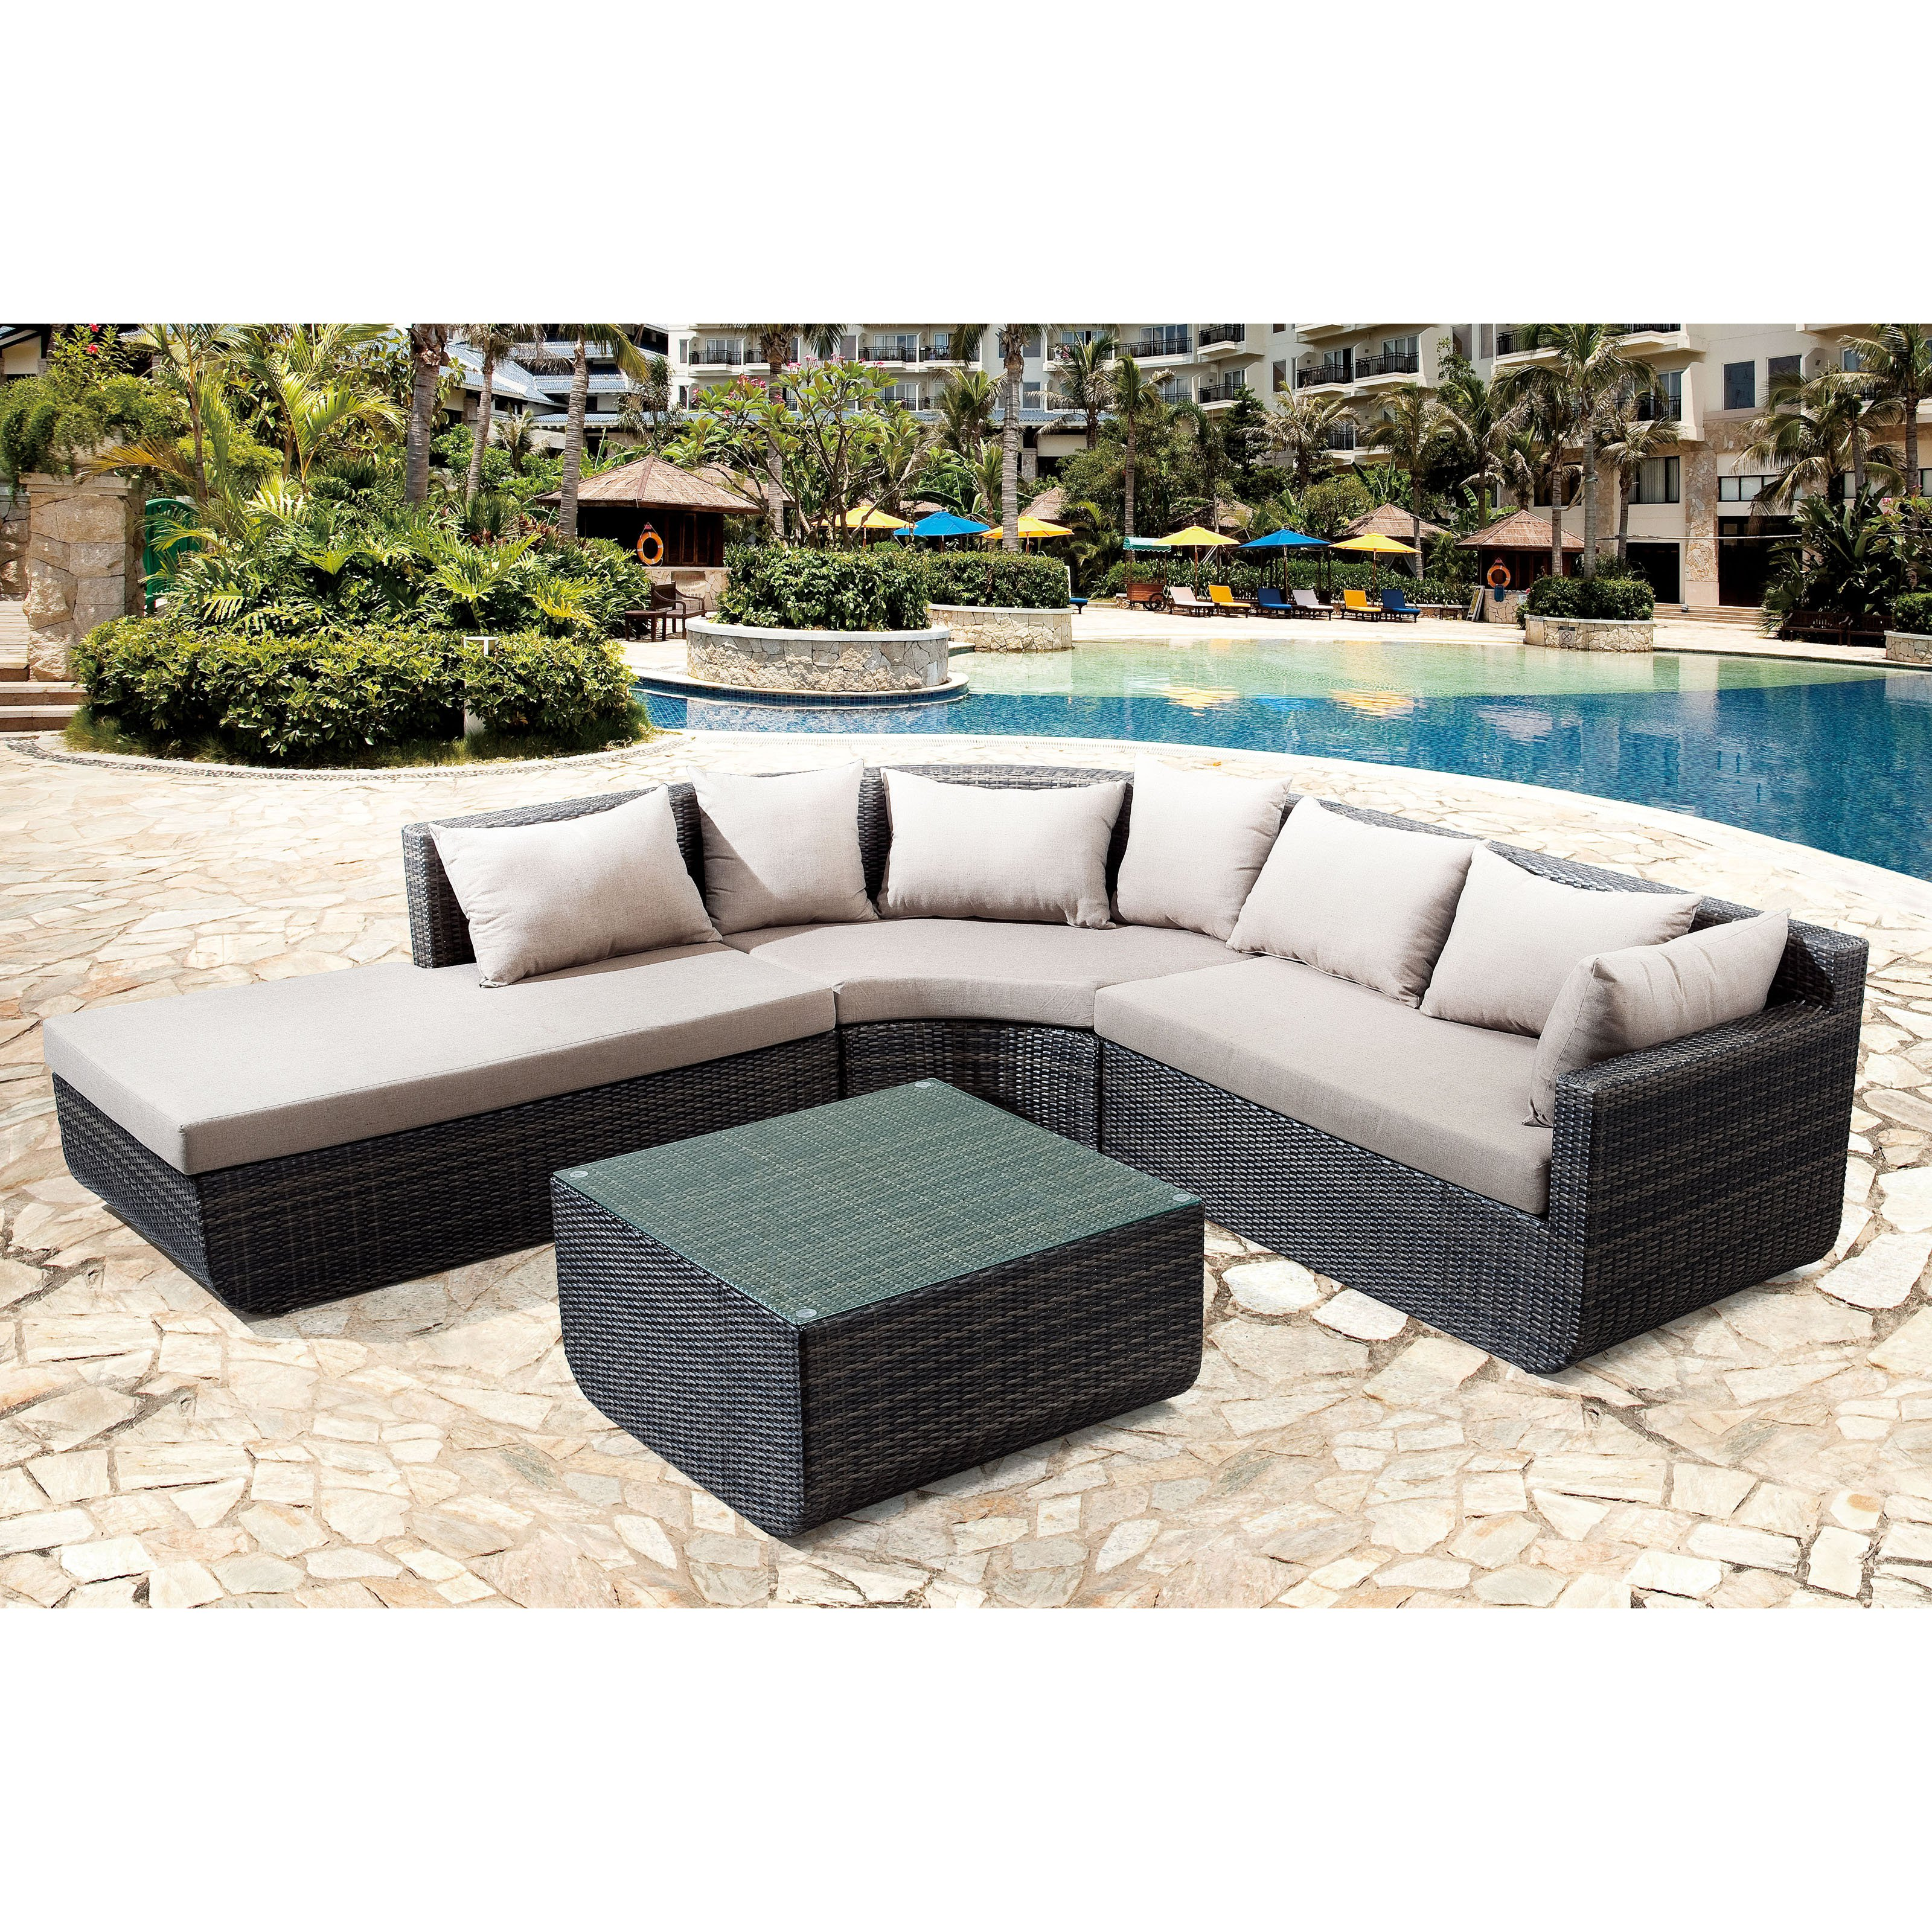 Zuo Vive Captiva All-Weather Wicker Sectional Set